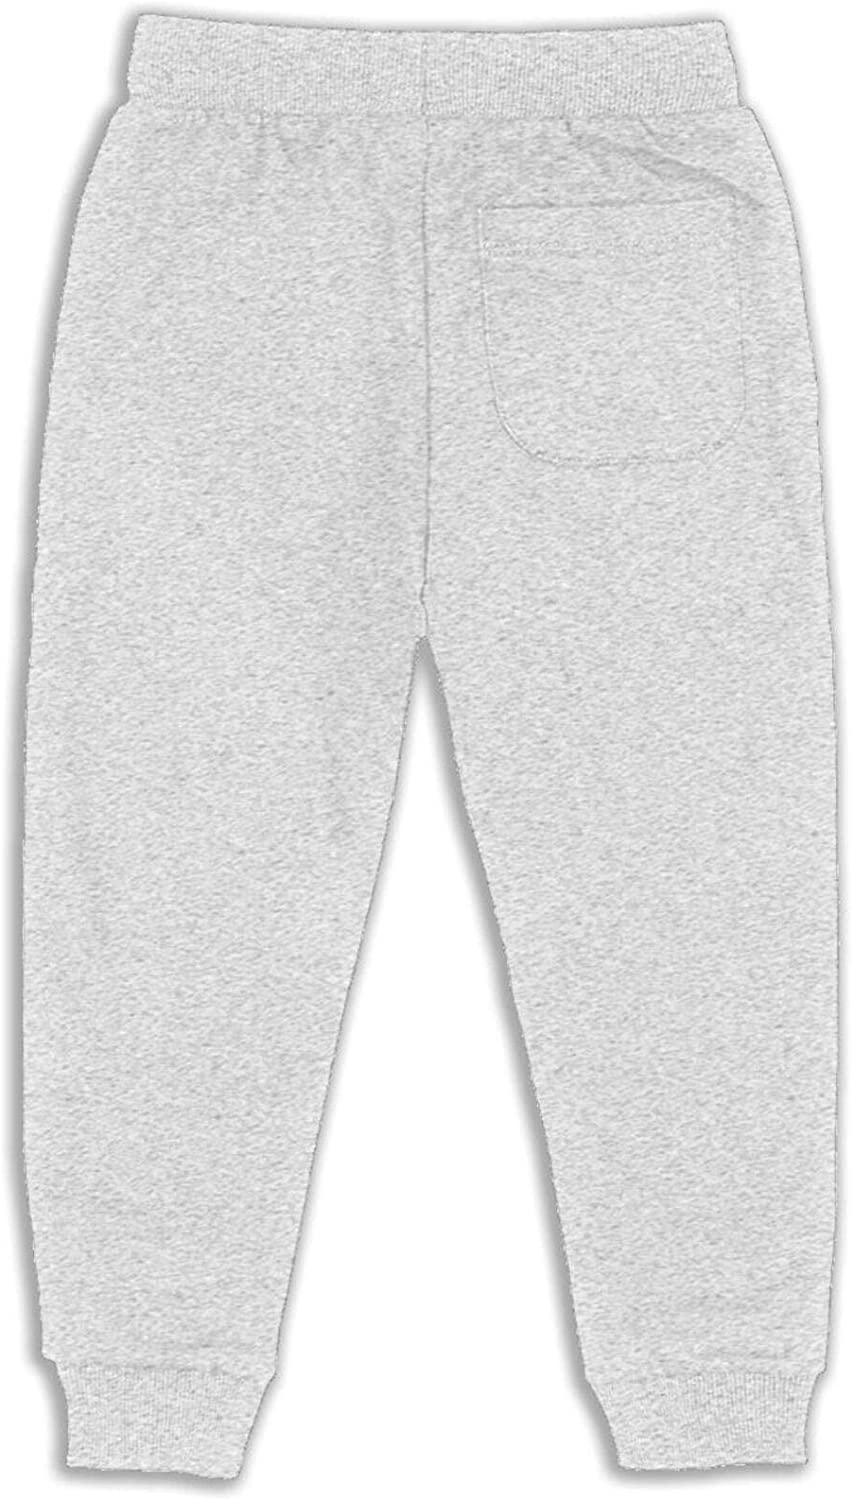 Maoyouuxian You Can Run from Your Problems Boy Toddler Boys'Cotton Jogger Sweat Pants 2t-6 (5-6 Years)